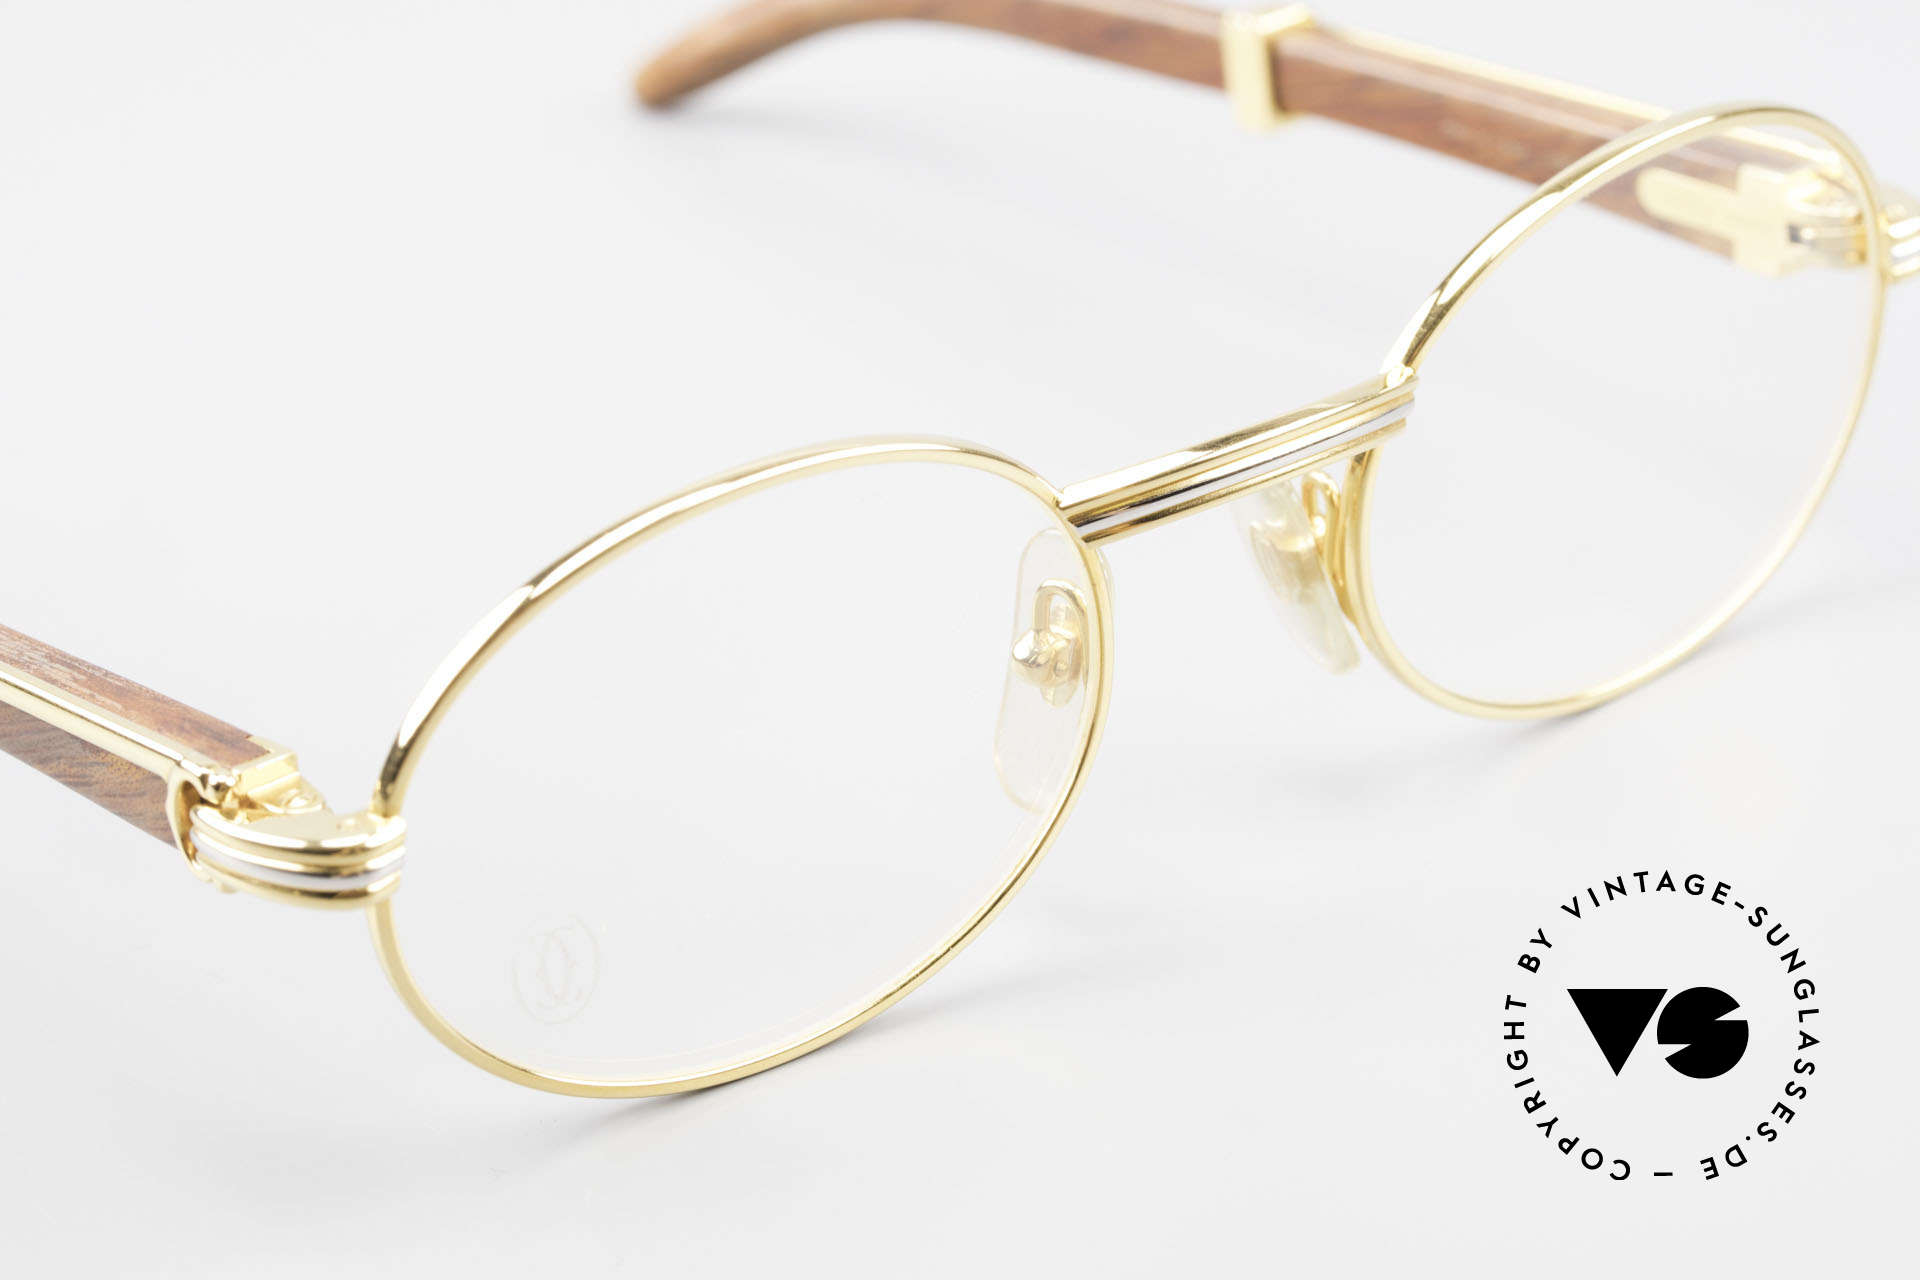 Cartier Giverny Oval Wood Glasses Gold Plated, WE DO NOT ACCEPT CREDIT CARDS for this model!, Made for Men and Women